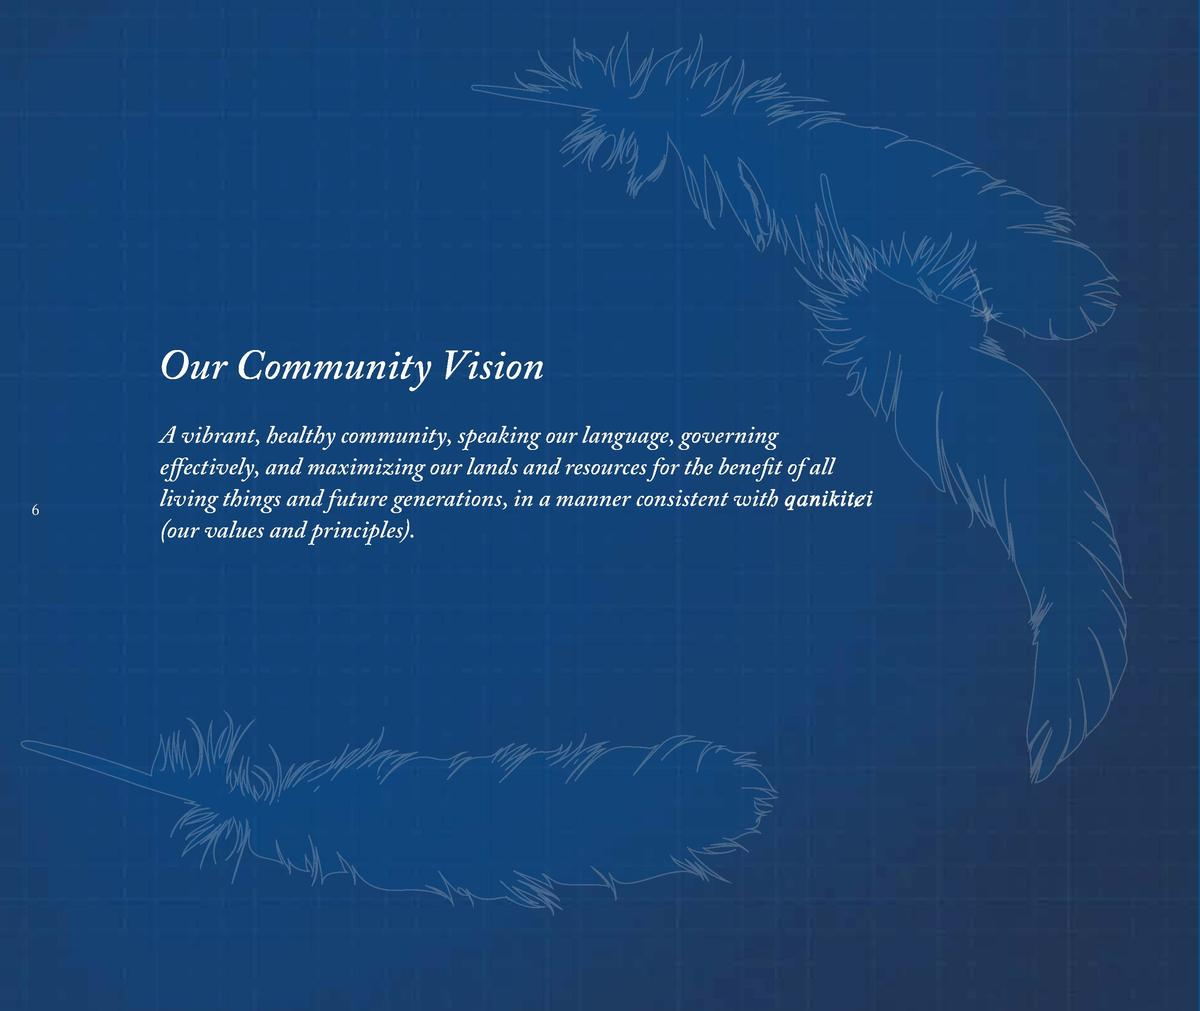 Our Community Vision 6  A vibrant, healthy community, speaking our language, governing effectively, and maximizing our lan...